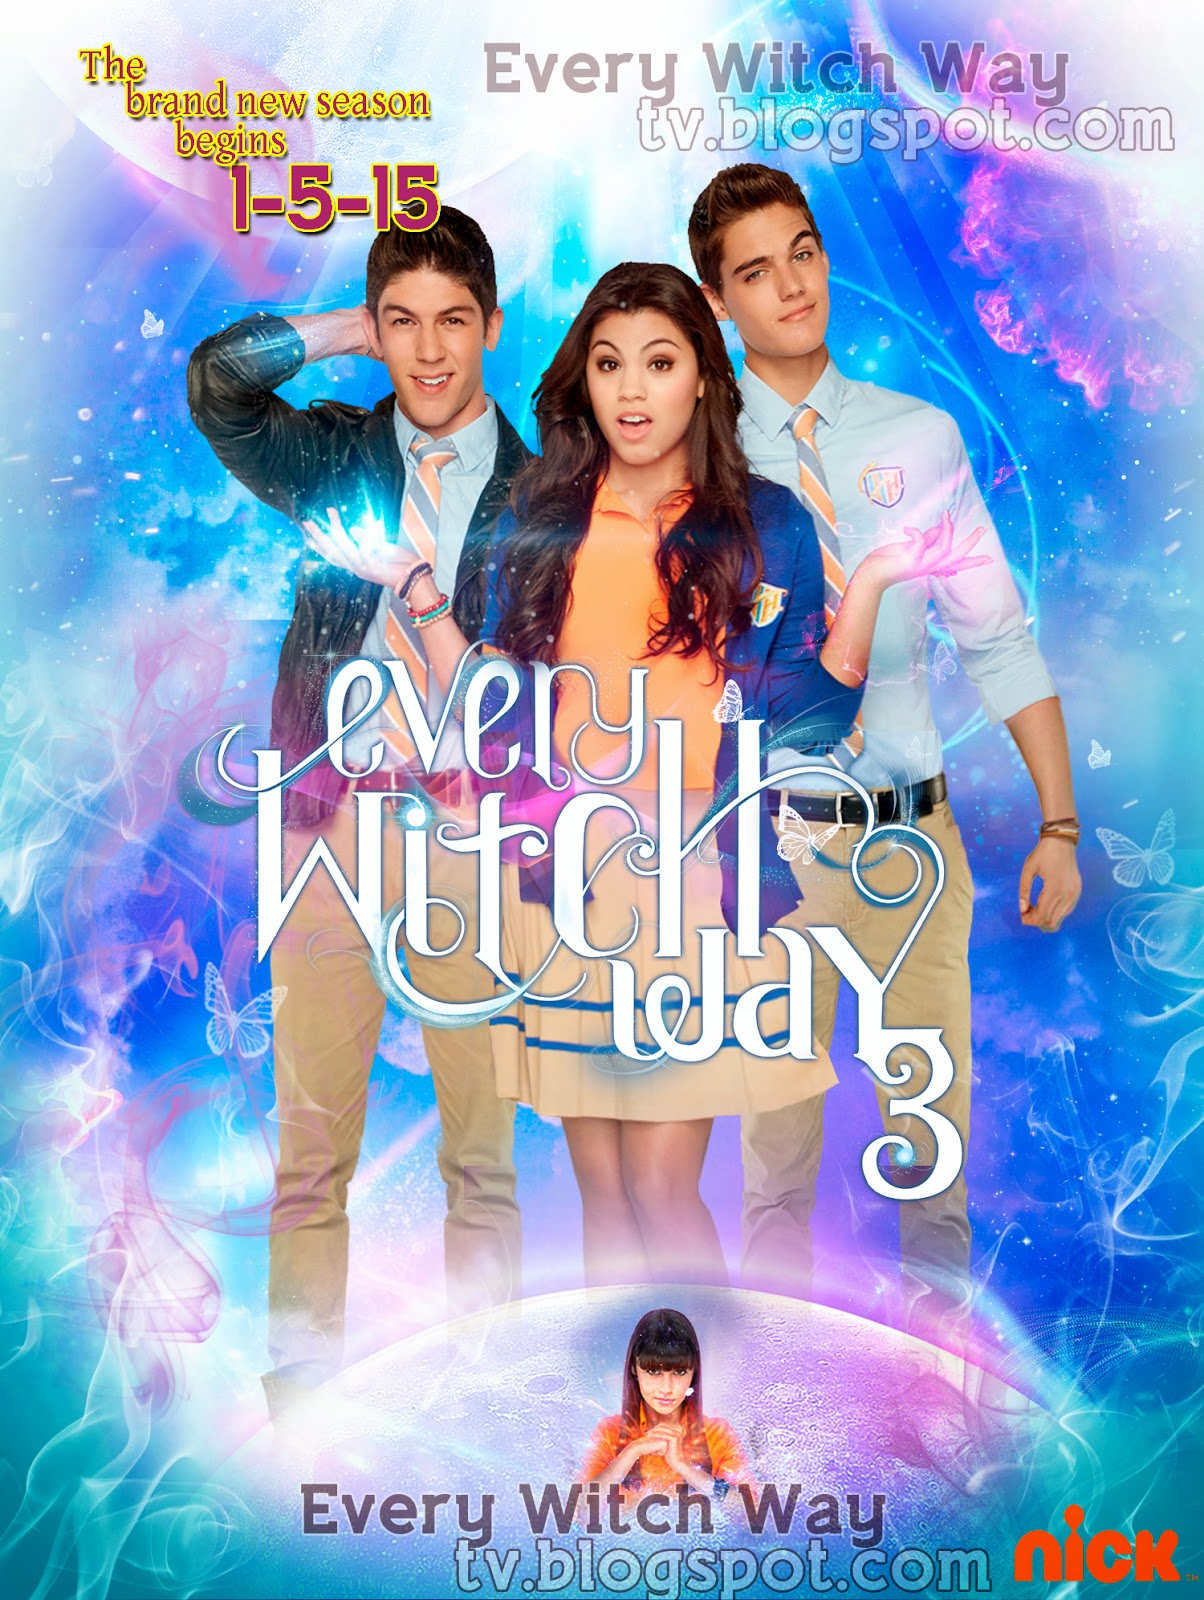 Promotional poster of every witch way season 3 every witch way